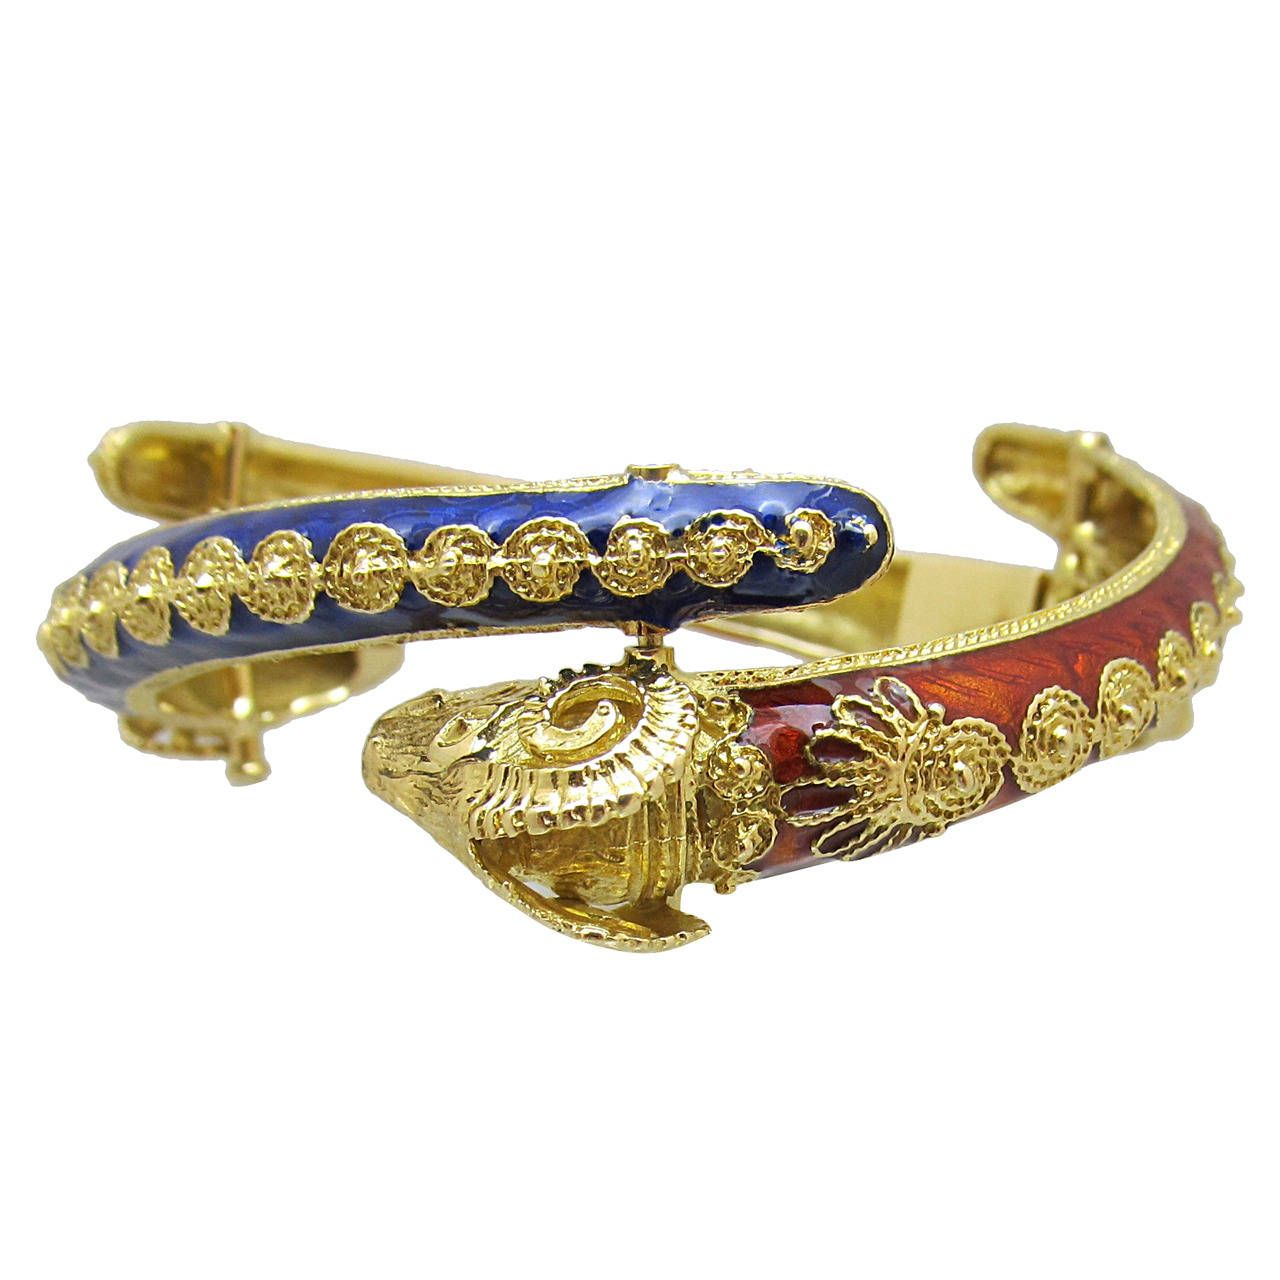 Enamel and gold bangle bracelet for sale at stdibs armschmuck